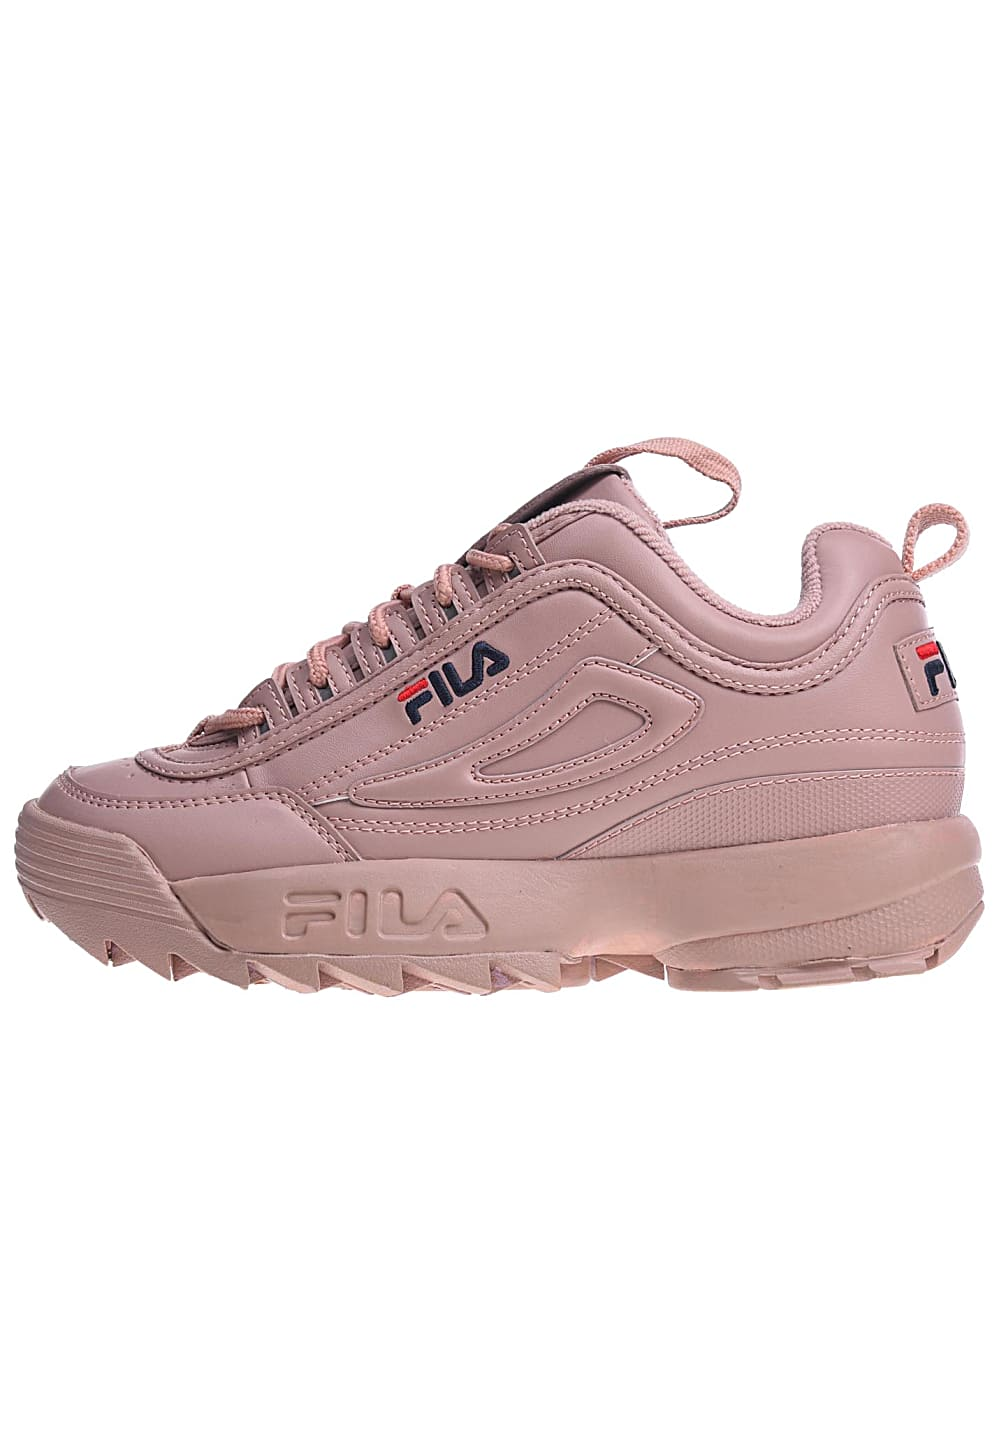 Shoes Women Heritage For Disruptor Fashion Low Fila Pink qxpFIw4wC